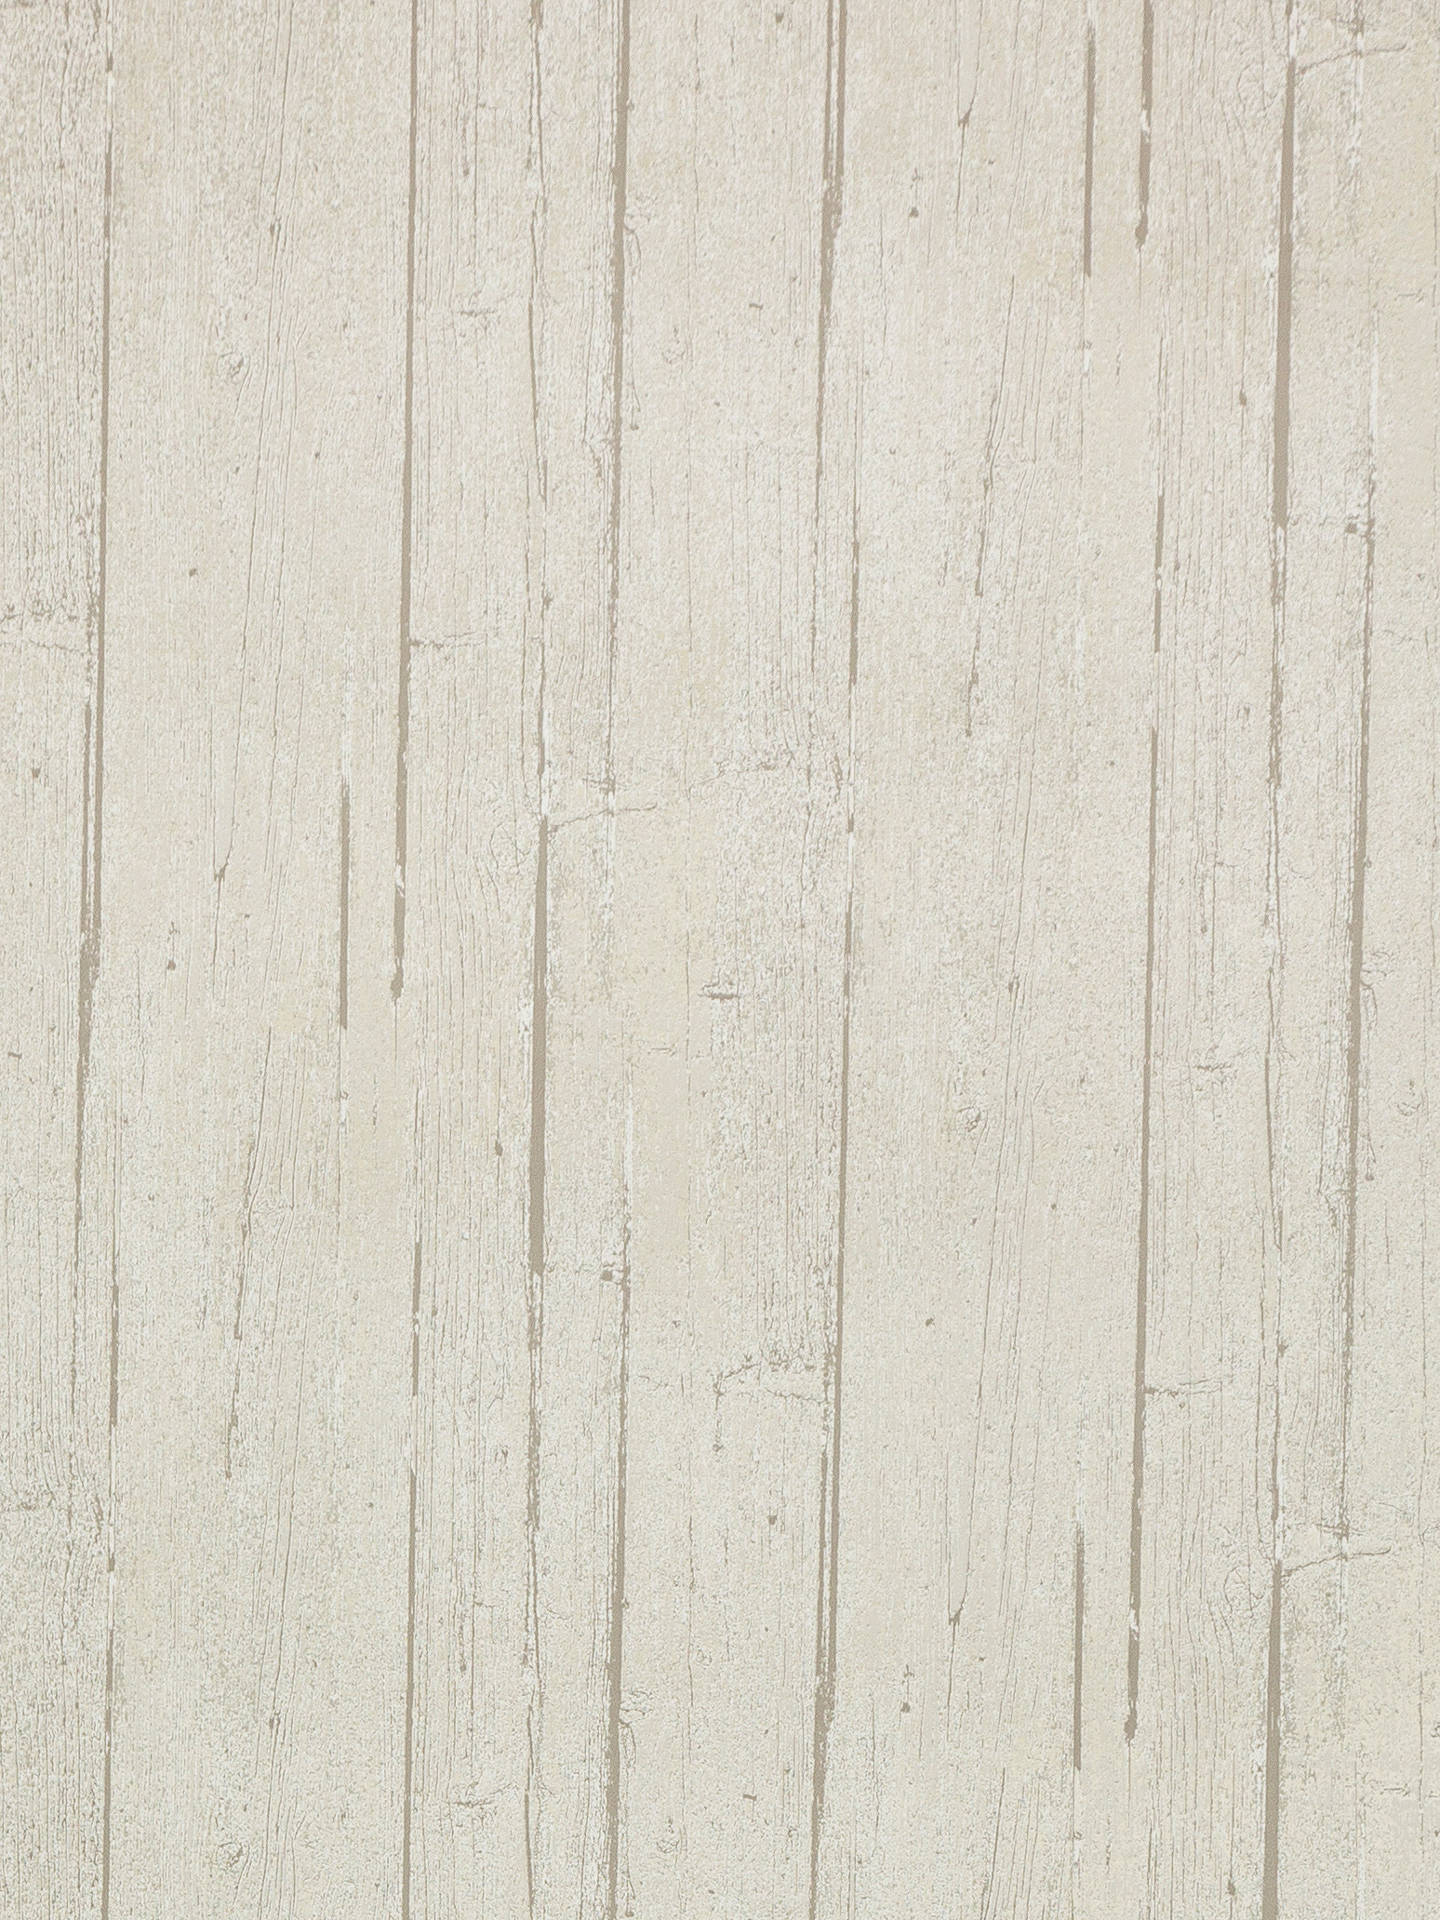 BuyMulberry Home Wood Panel Wallpaper, Dove Grey, FG081.A22 Online at johnlewis.com